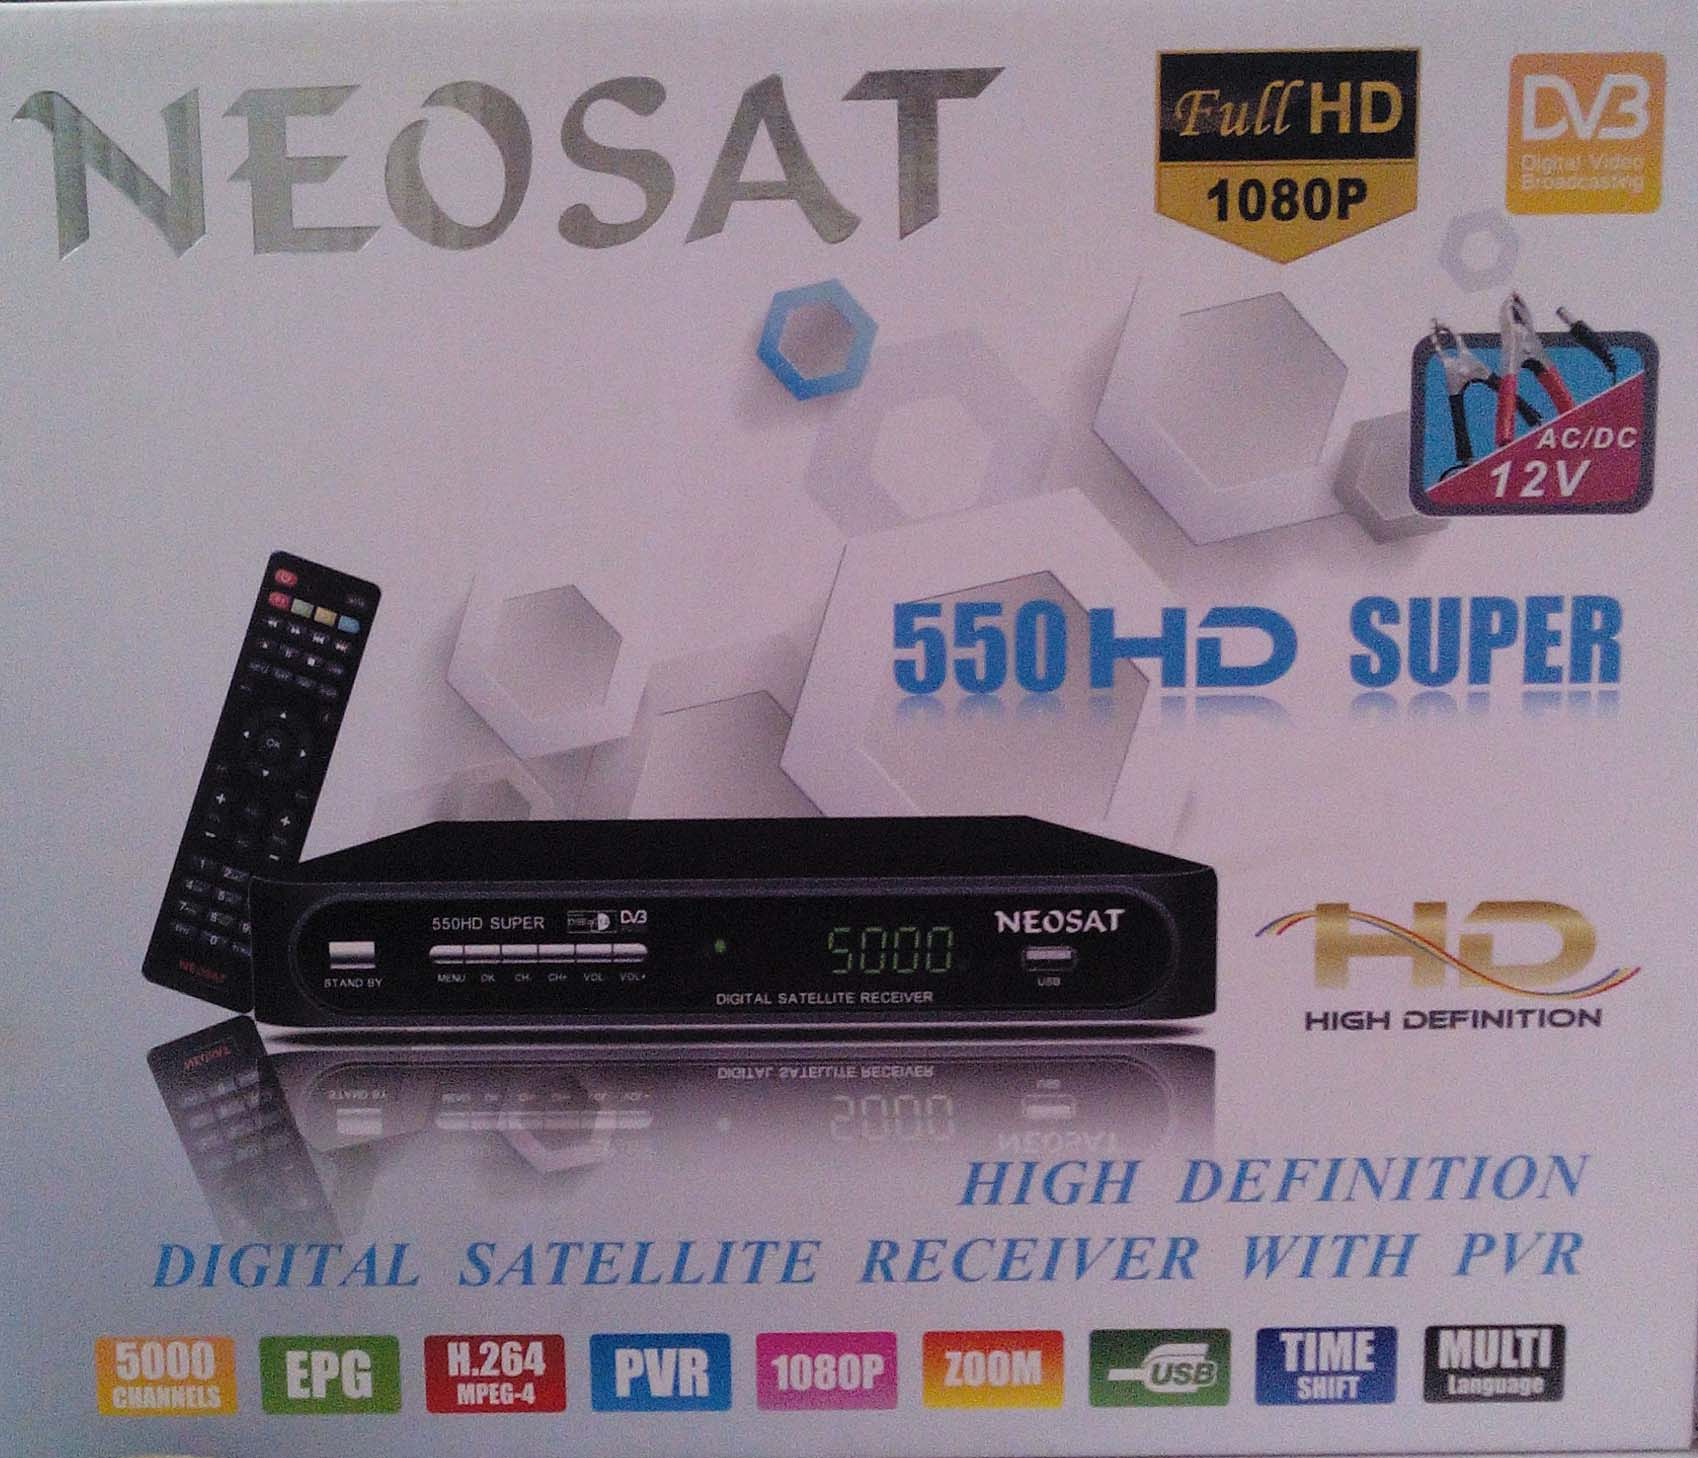 Neosat 550 Hd Super China Software Downloadinstman nokia blaupunkt